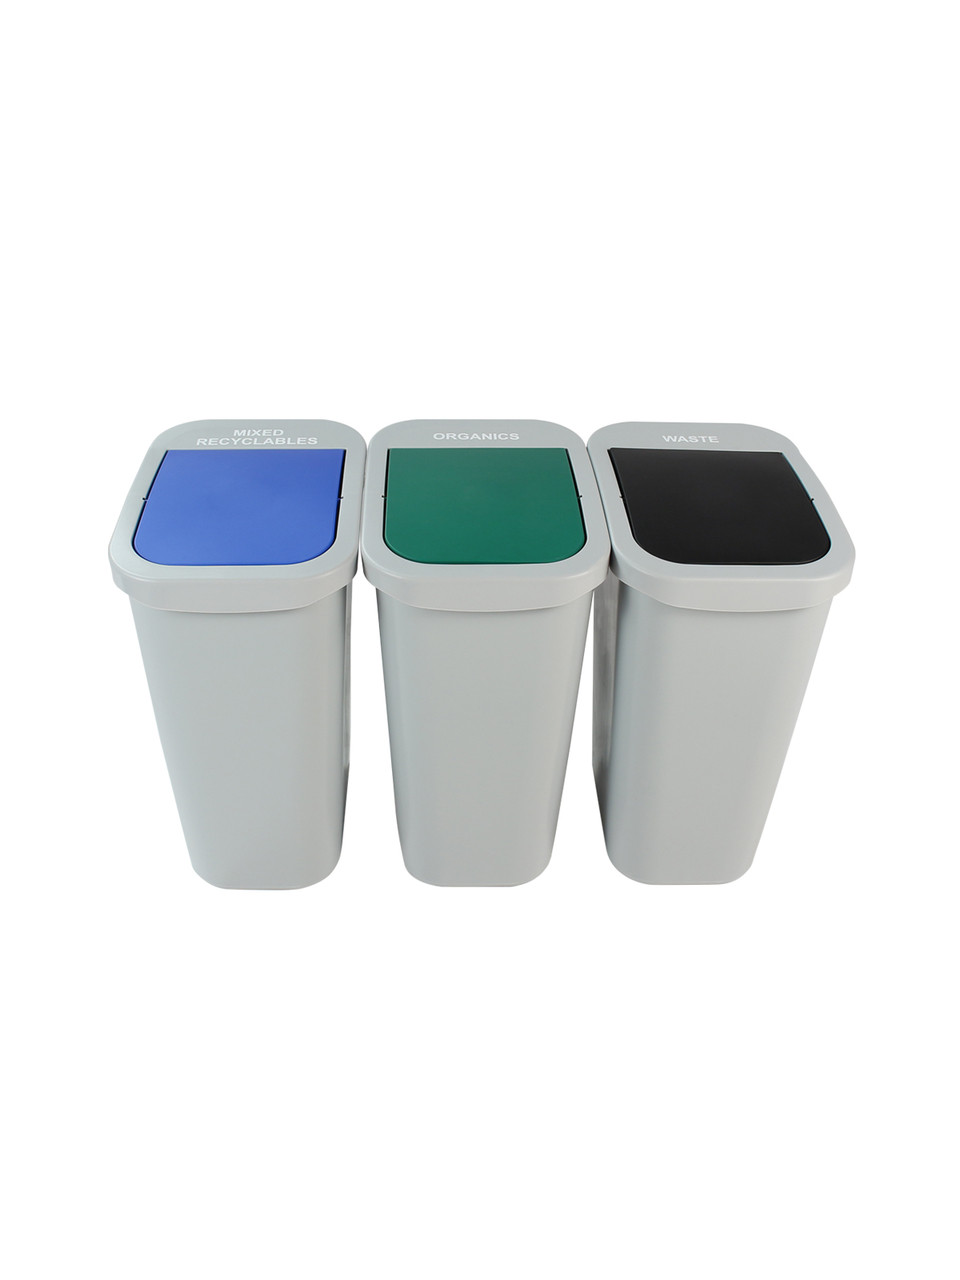 30 Gallon Billi Box Triple Trash Can Recycle Bin Center 8102032-444 (Mixed Swing, Organics Swing, Waste Swing)